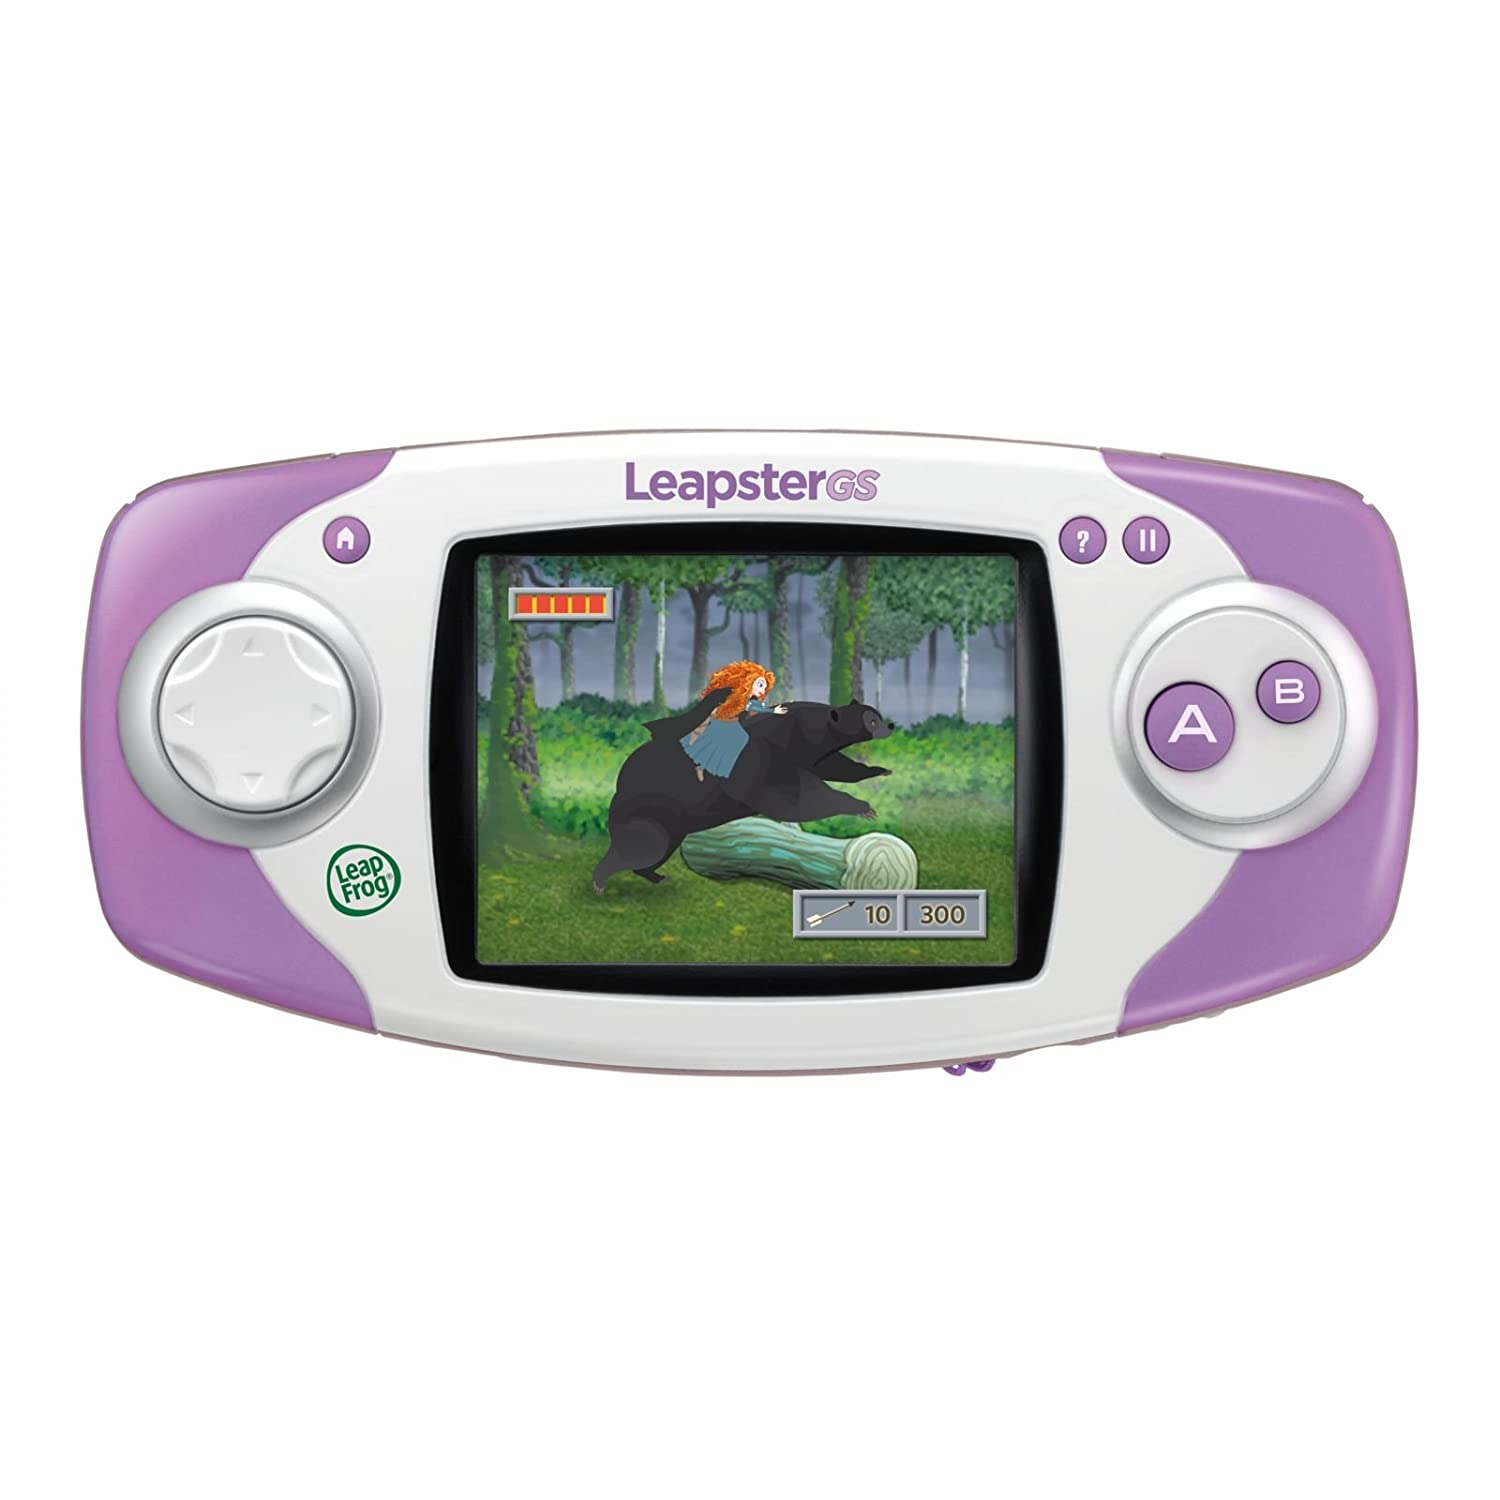 LeapFrog SpongeBob SquarePants: The Clam Prix Learning Game (works with LeapPad Tablets, Leapster GS, and Leapster Explorer).